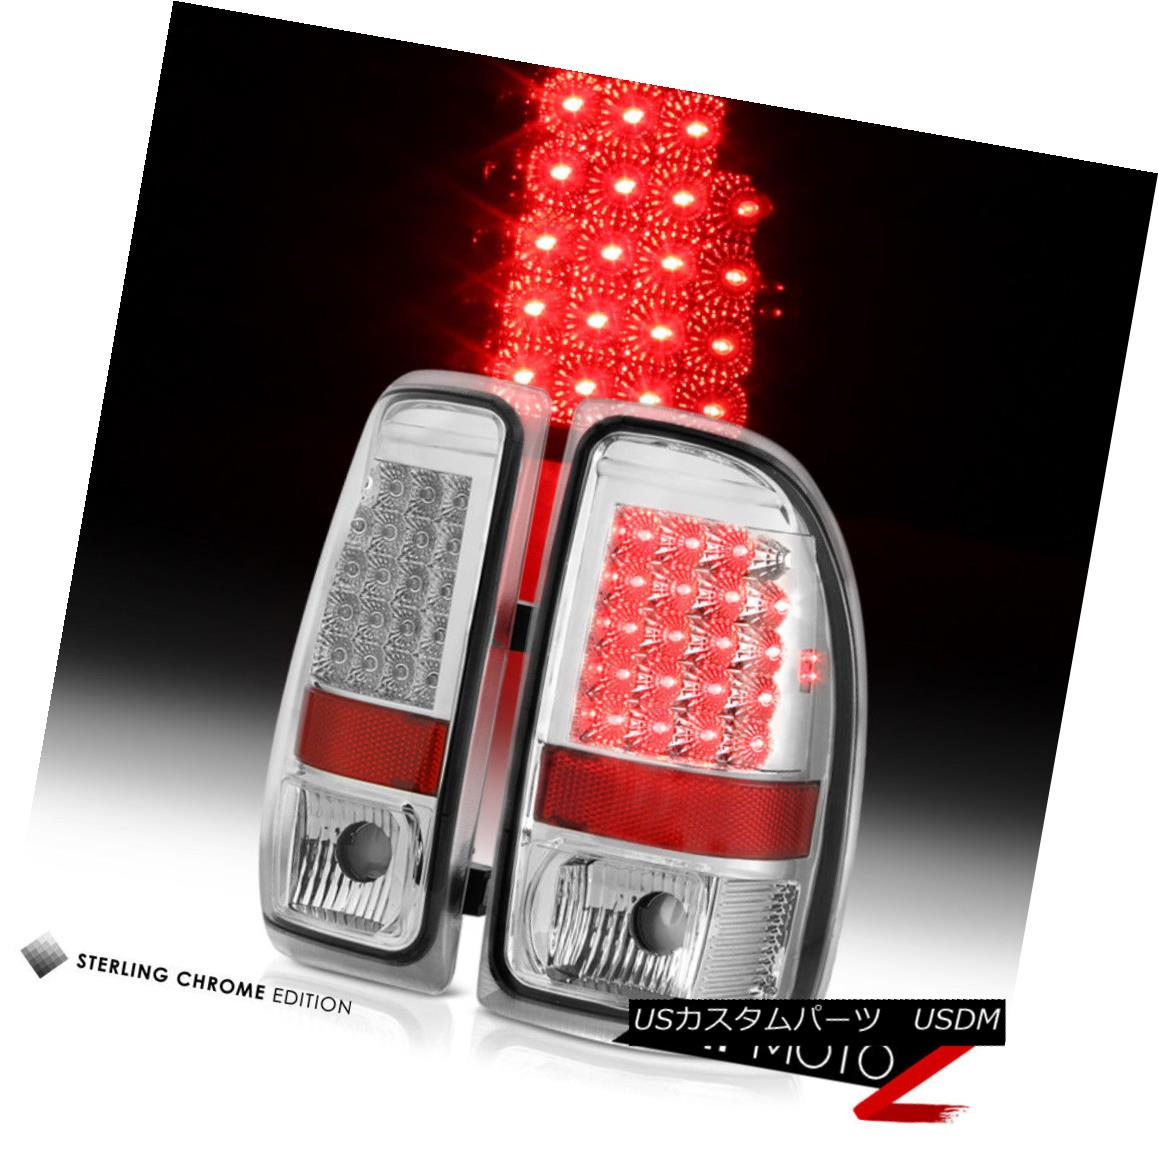 テールライト EURO CHROME 1997 1998 1999 2000 2001 2002 2003 2004 Dakota LED Tail Lights Lamps EURO CHROME 1997 1998 1999 2000 2001 2002 2003 2004ダコタLEDテールライトランプ